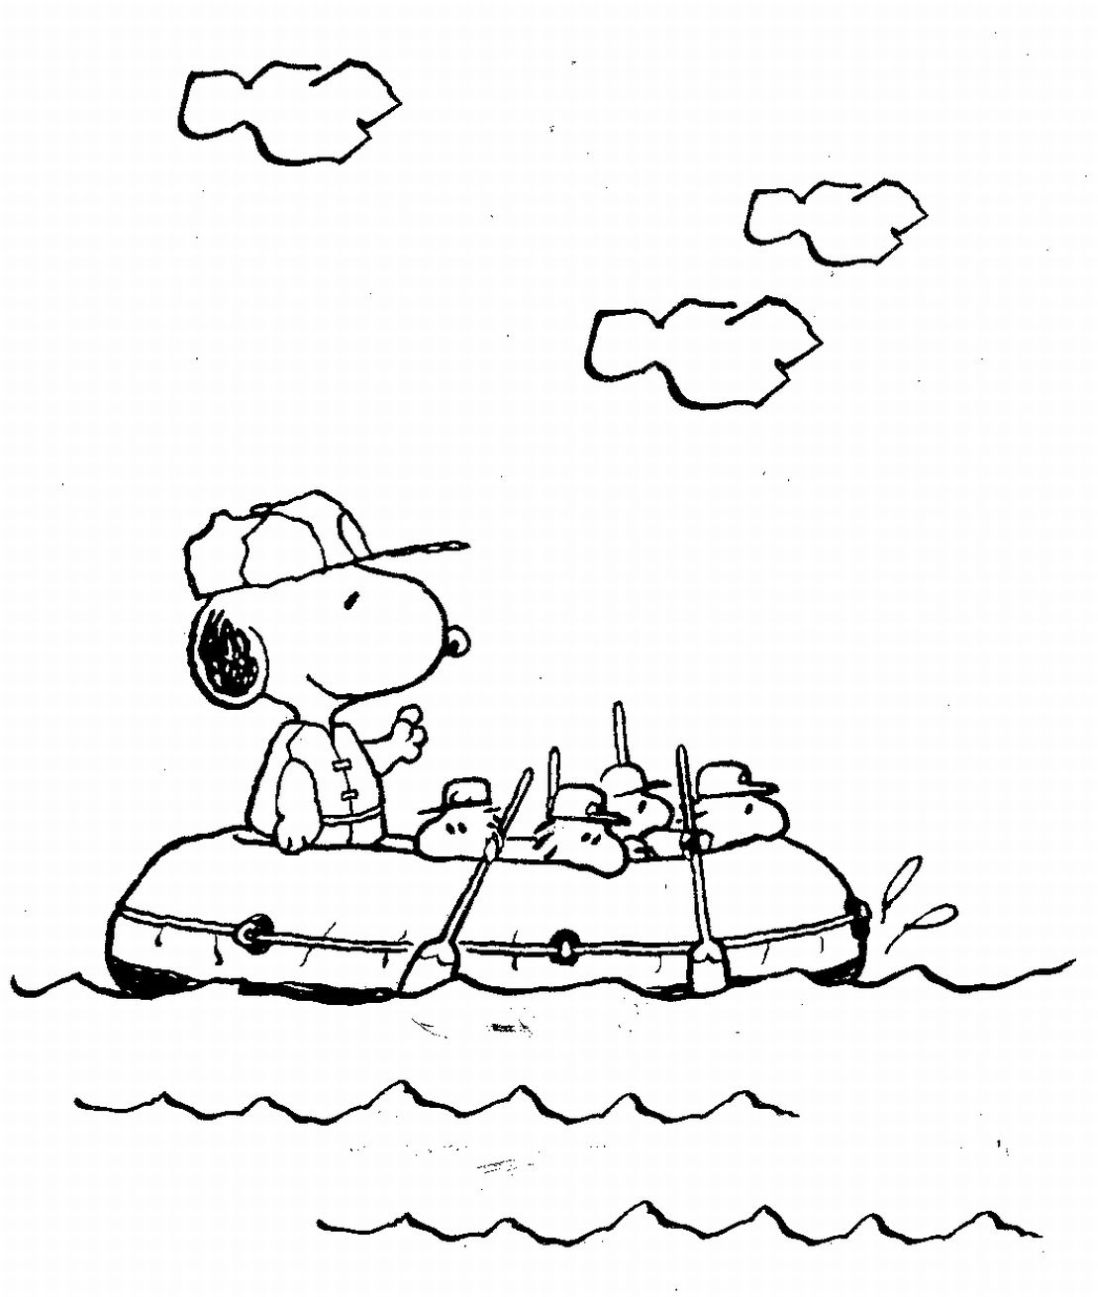 snoopy coloring page free printable snoopy coloring pages for kids